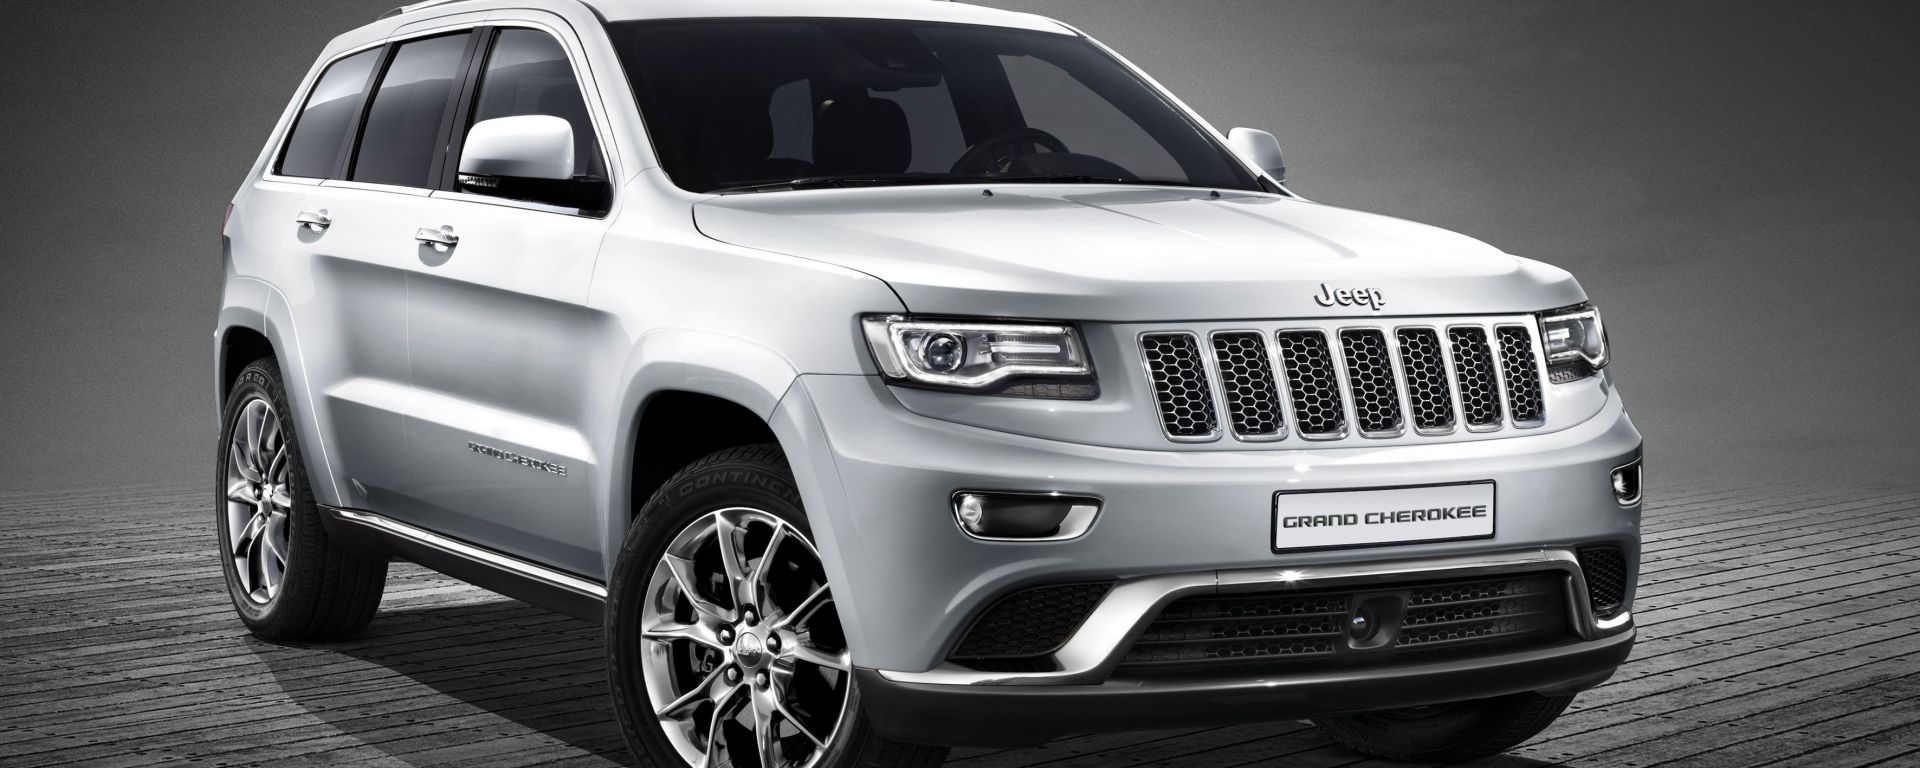 Jeep Grand Cherokee 2014, in un nuovo video